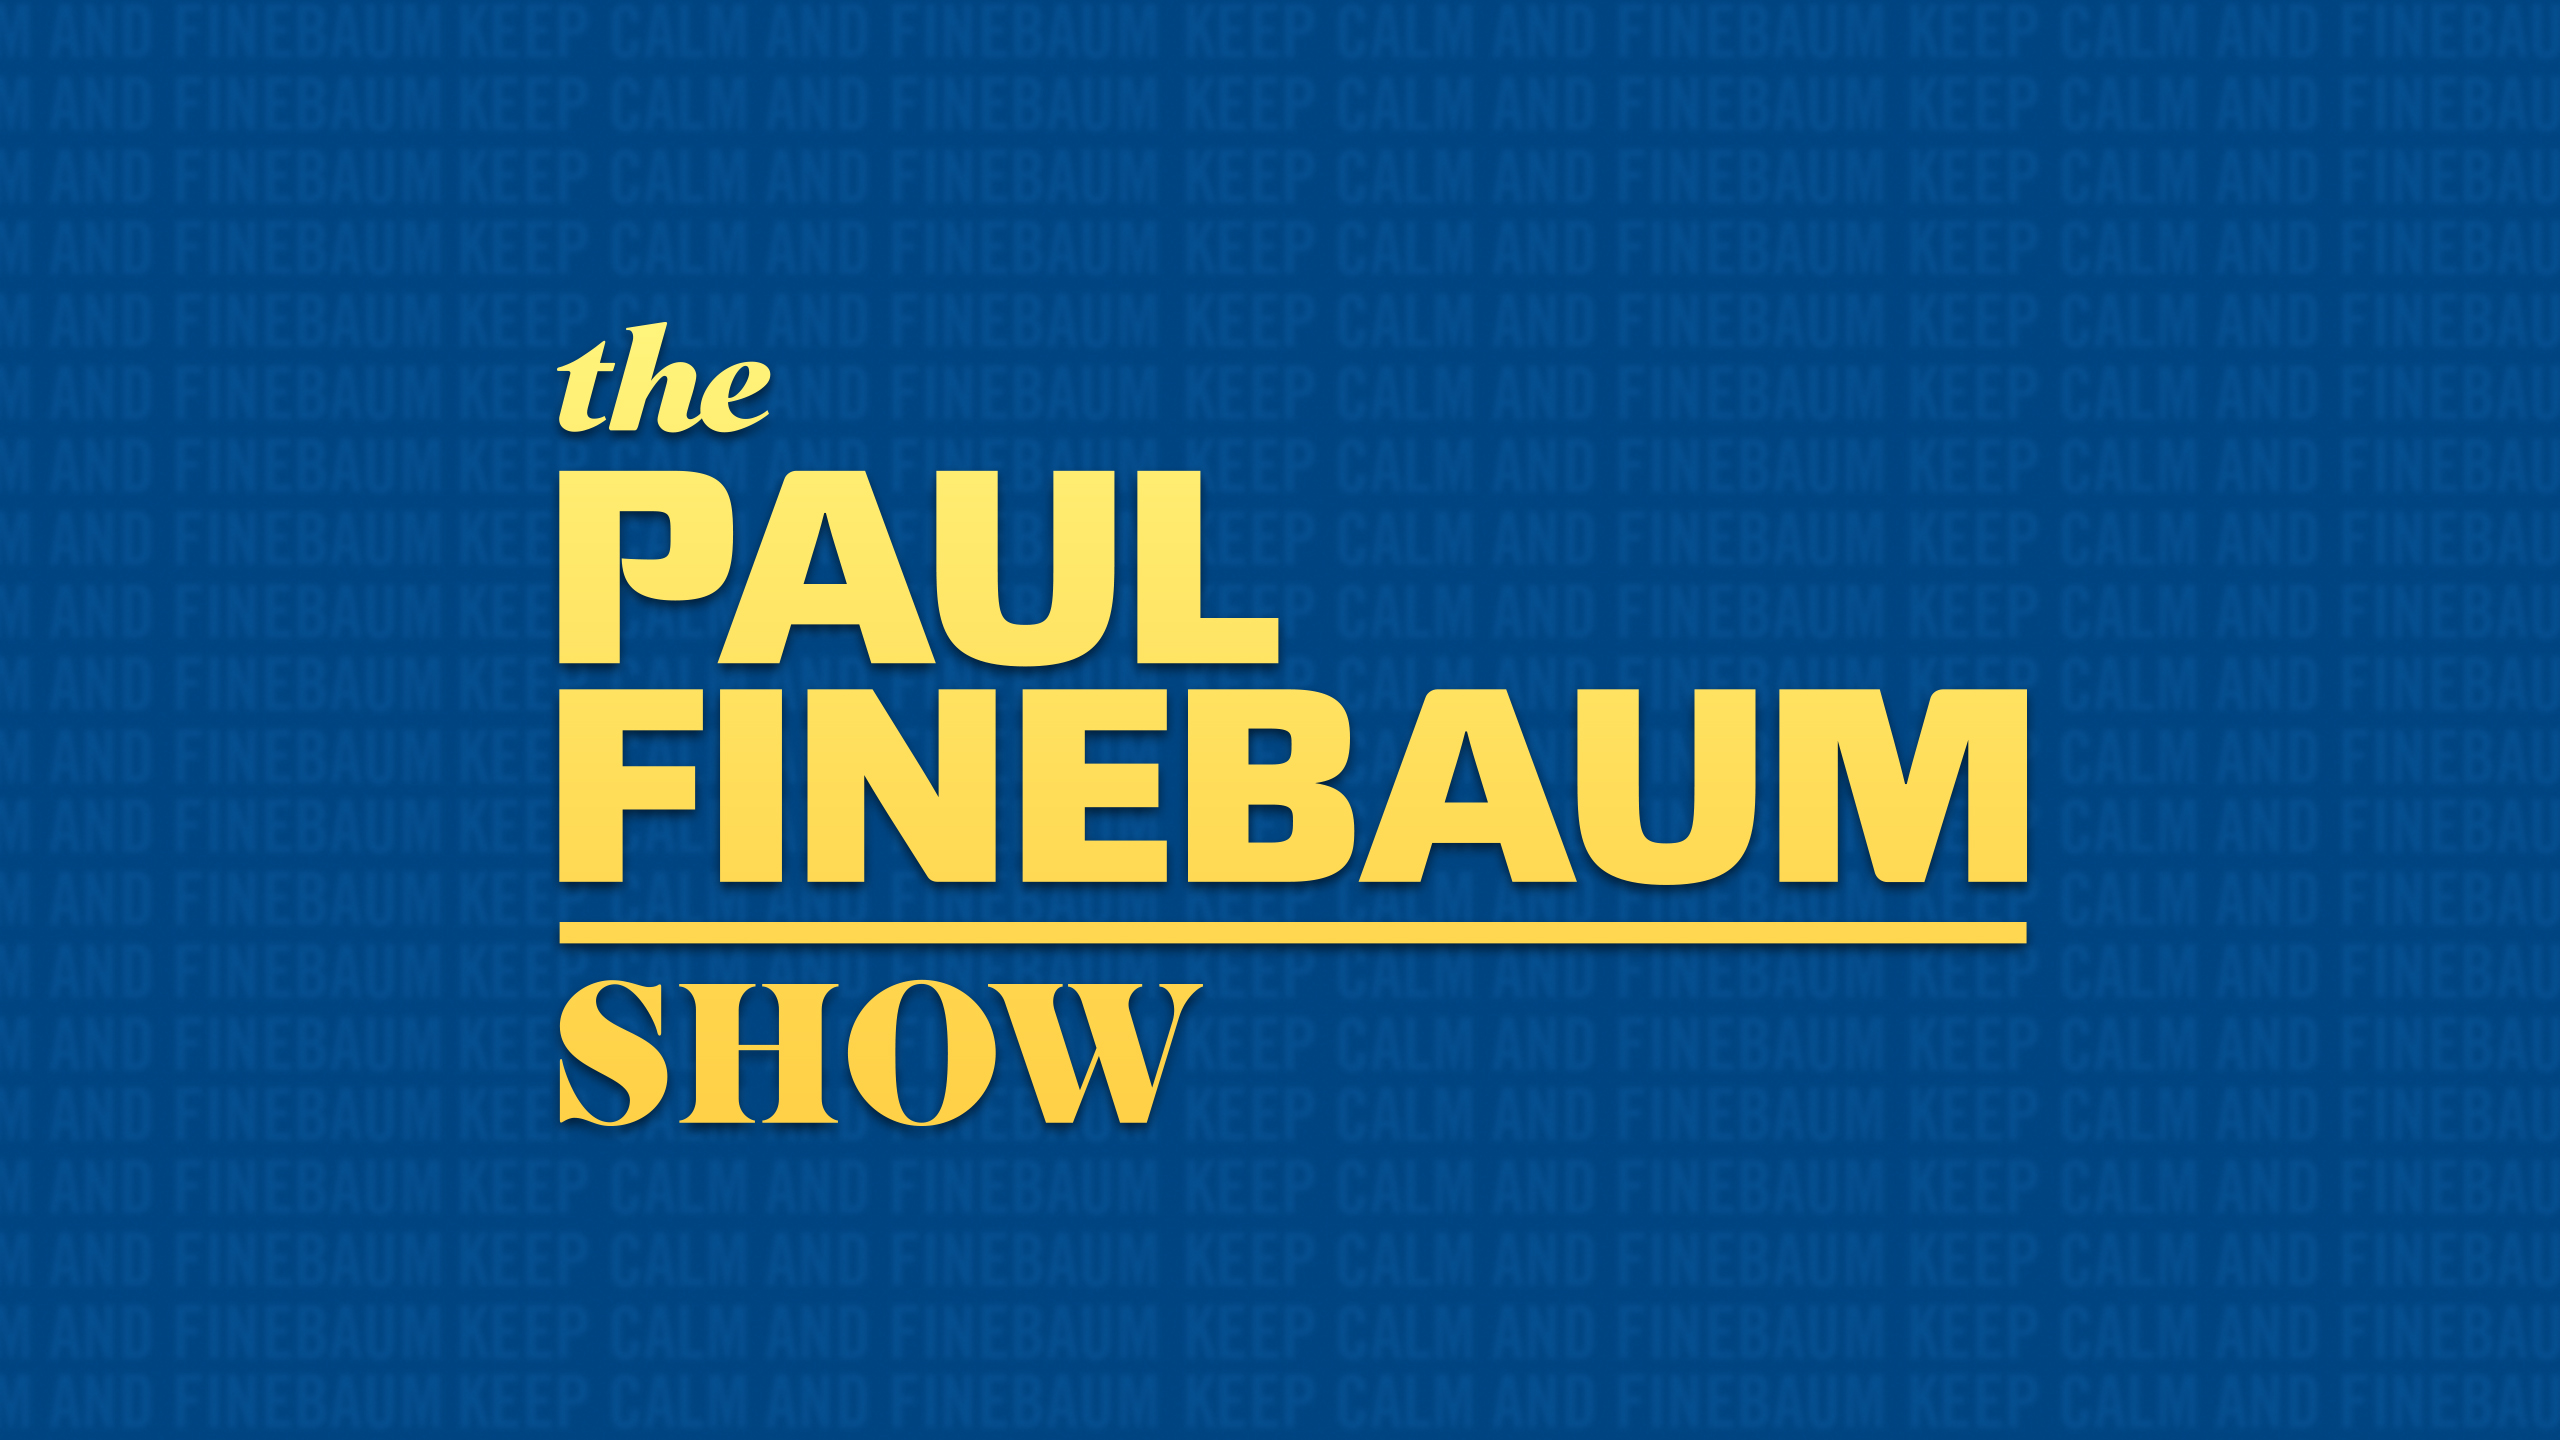 Wed, 3/20 - The Paul Finebaum Show